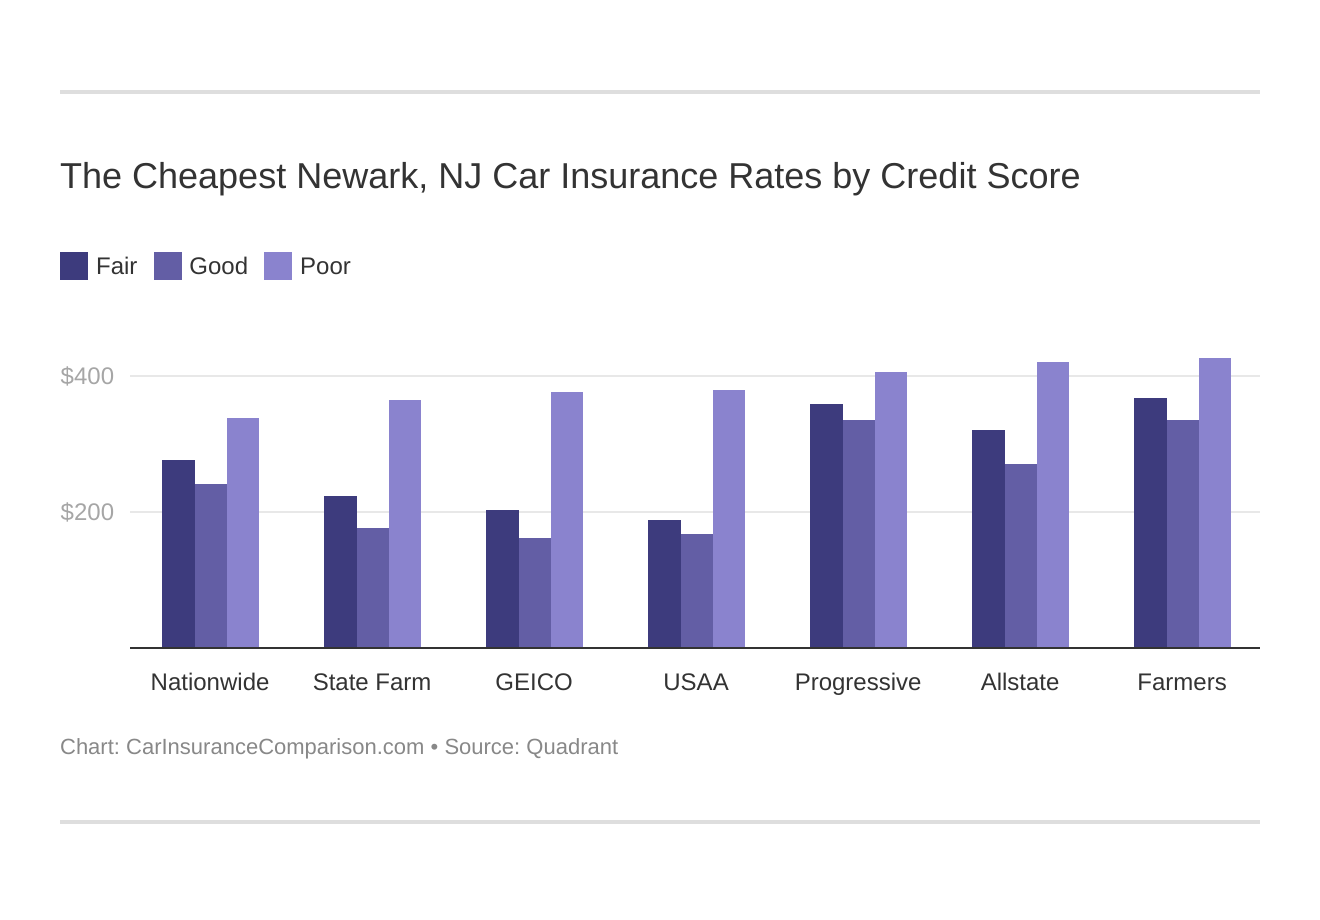 The Cheapest Newark, NJ Car Insurance Rates by Credit Score